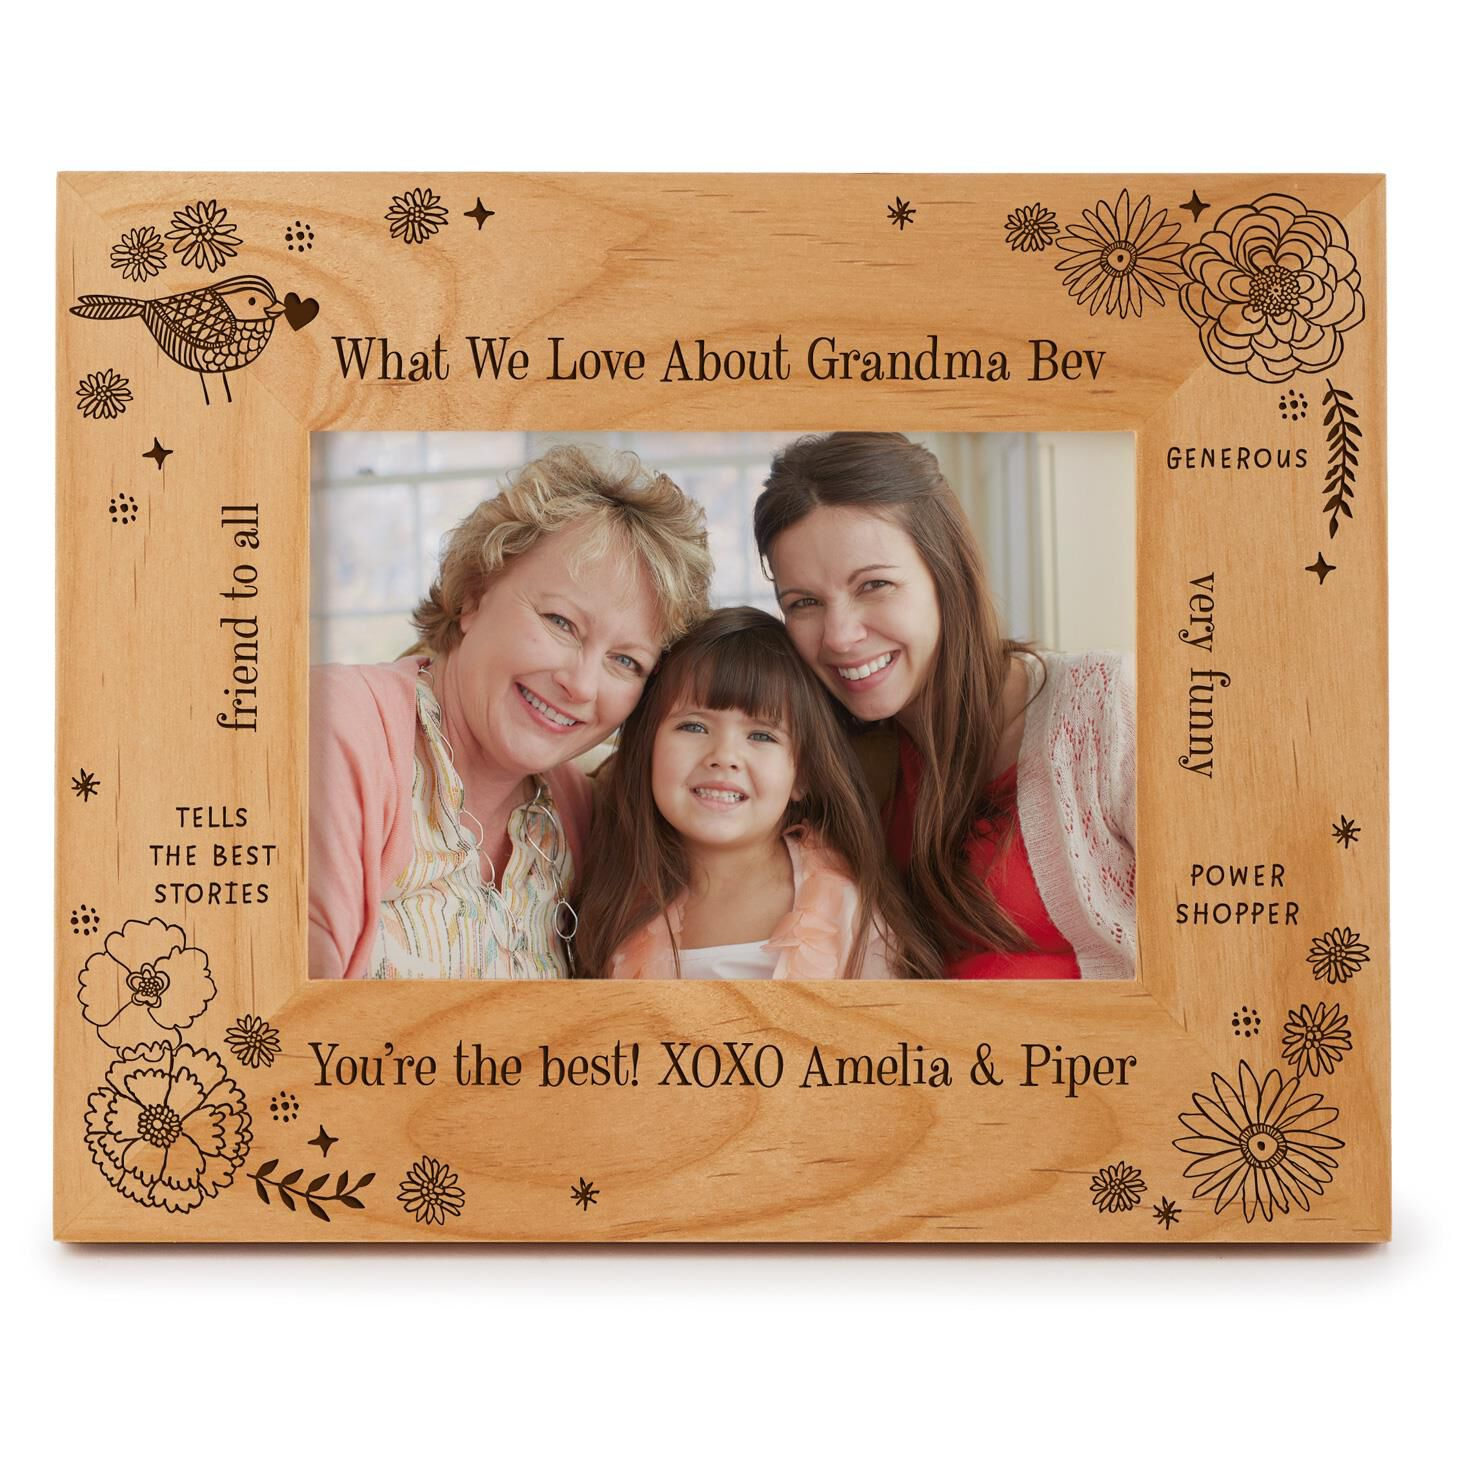 Engraved messages personalized 4x6 wood picture frame engraved messages personalized 4x6 wood picture frame personalized home decor hallmark jeuxipadfo Choice Image